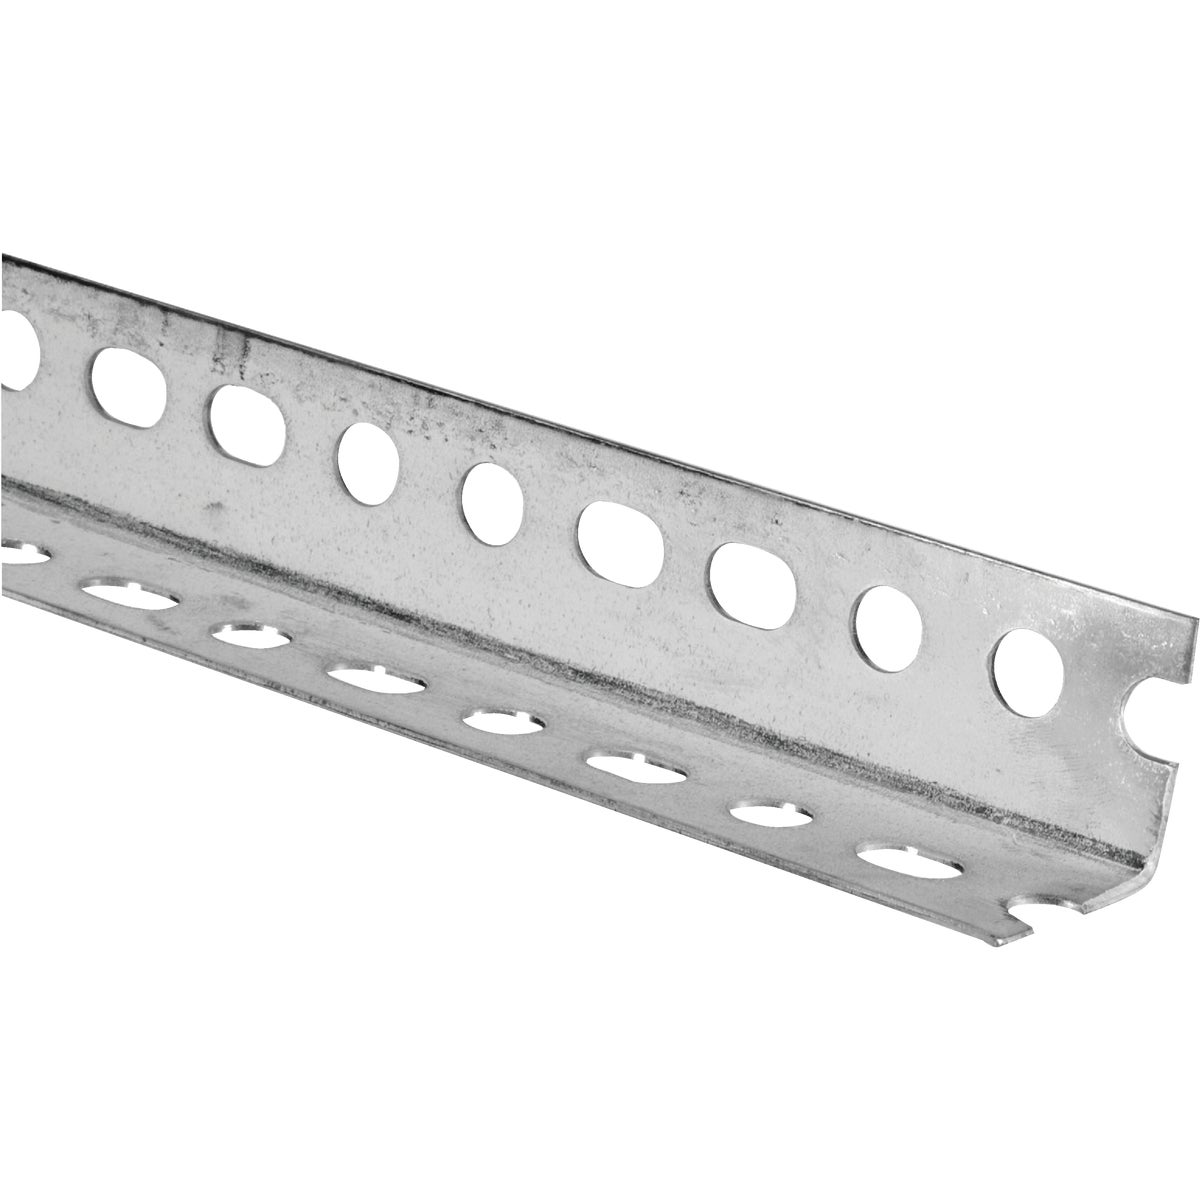 1-1/2X1-1/2X6' ANG PLATE - N180109 by National Mfg Co